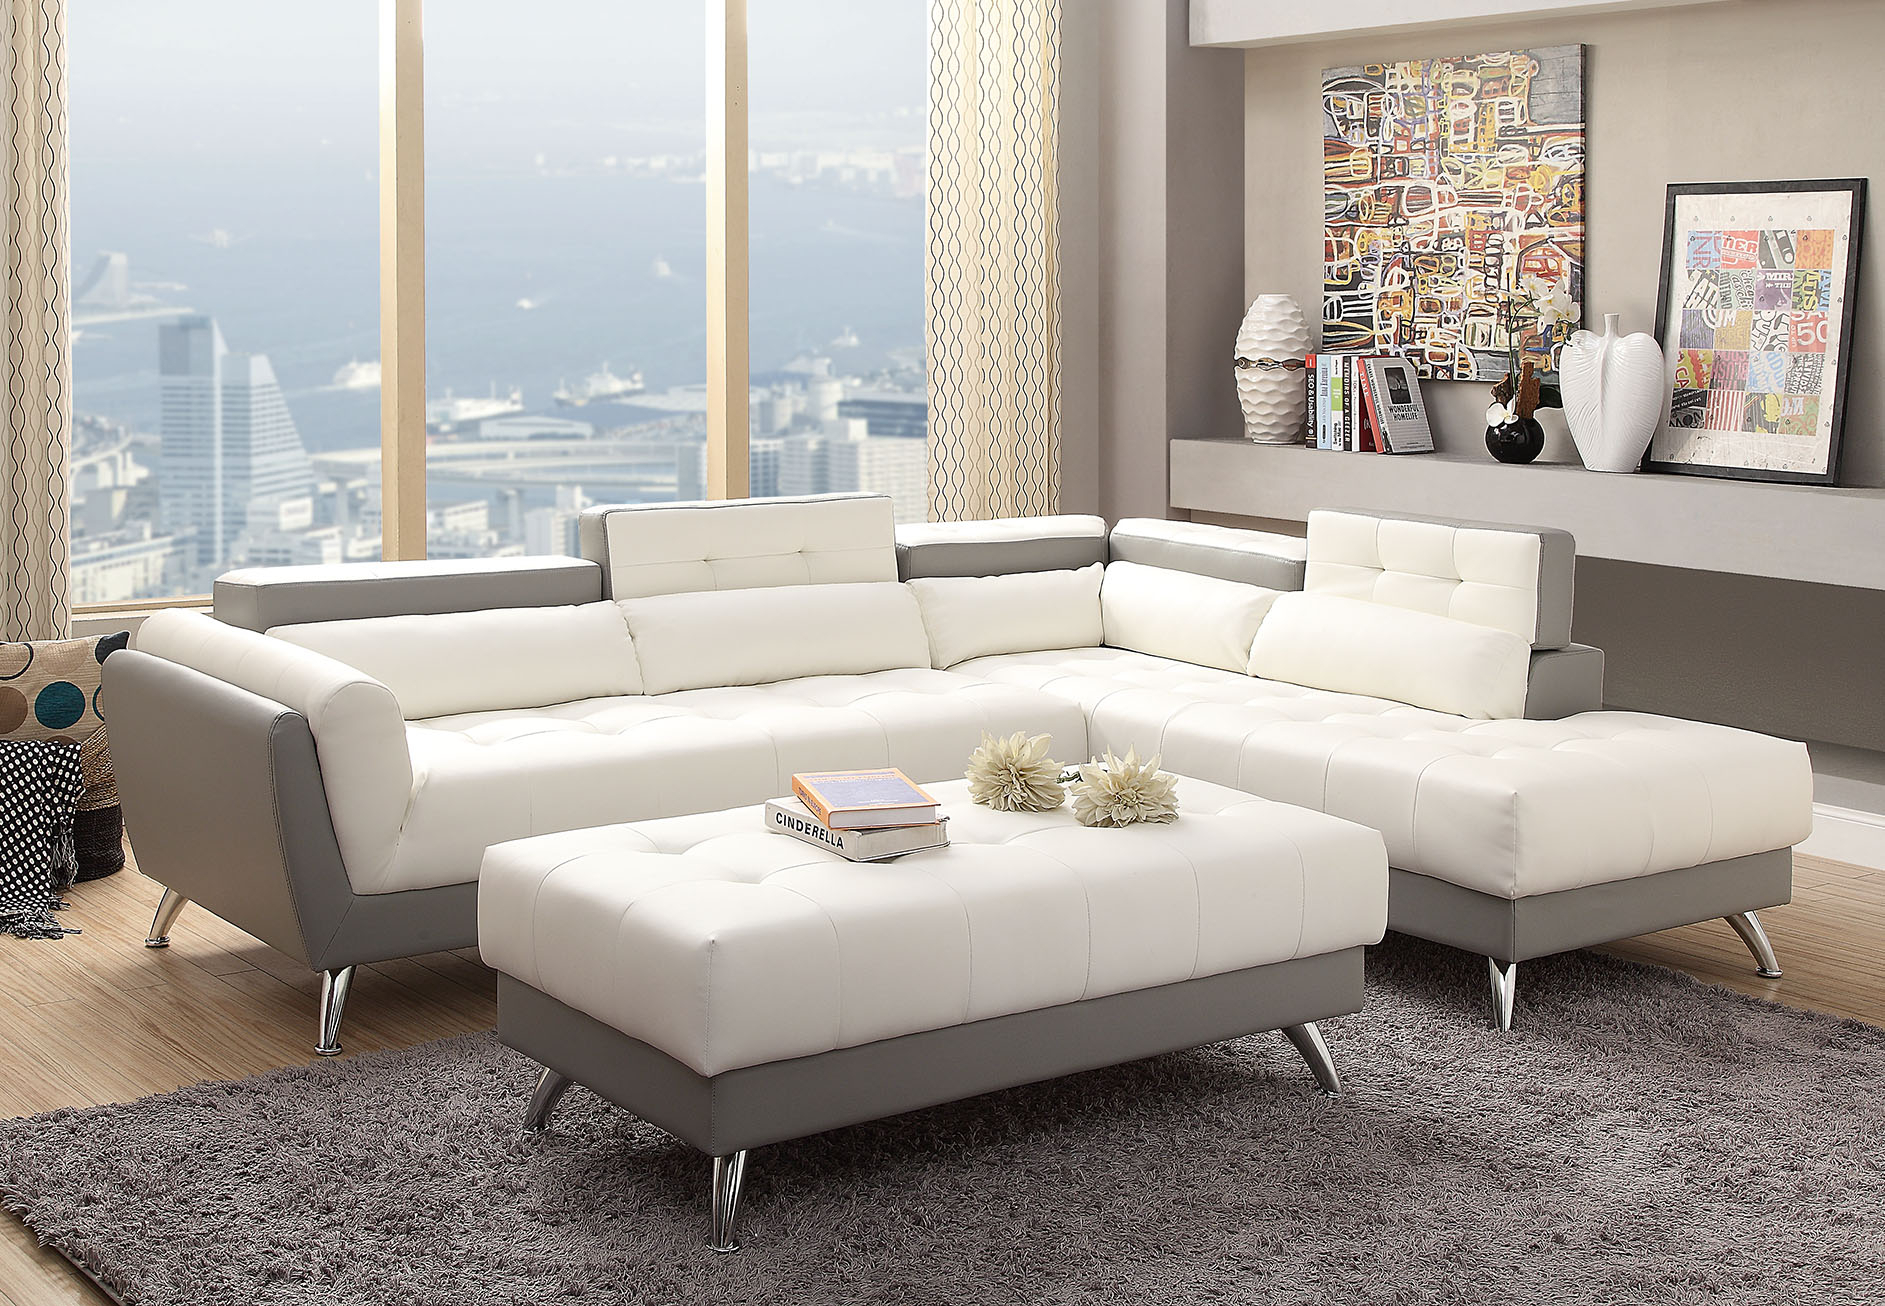 Contemporary Sectional Sofa – Miami Gallery Furniture Intended For Sectional Sofas With Oversized Ottoman (View 13 of 15)